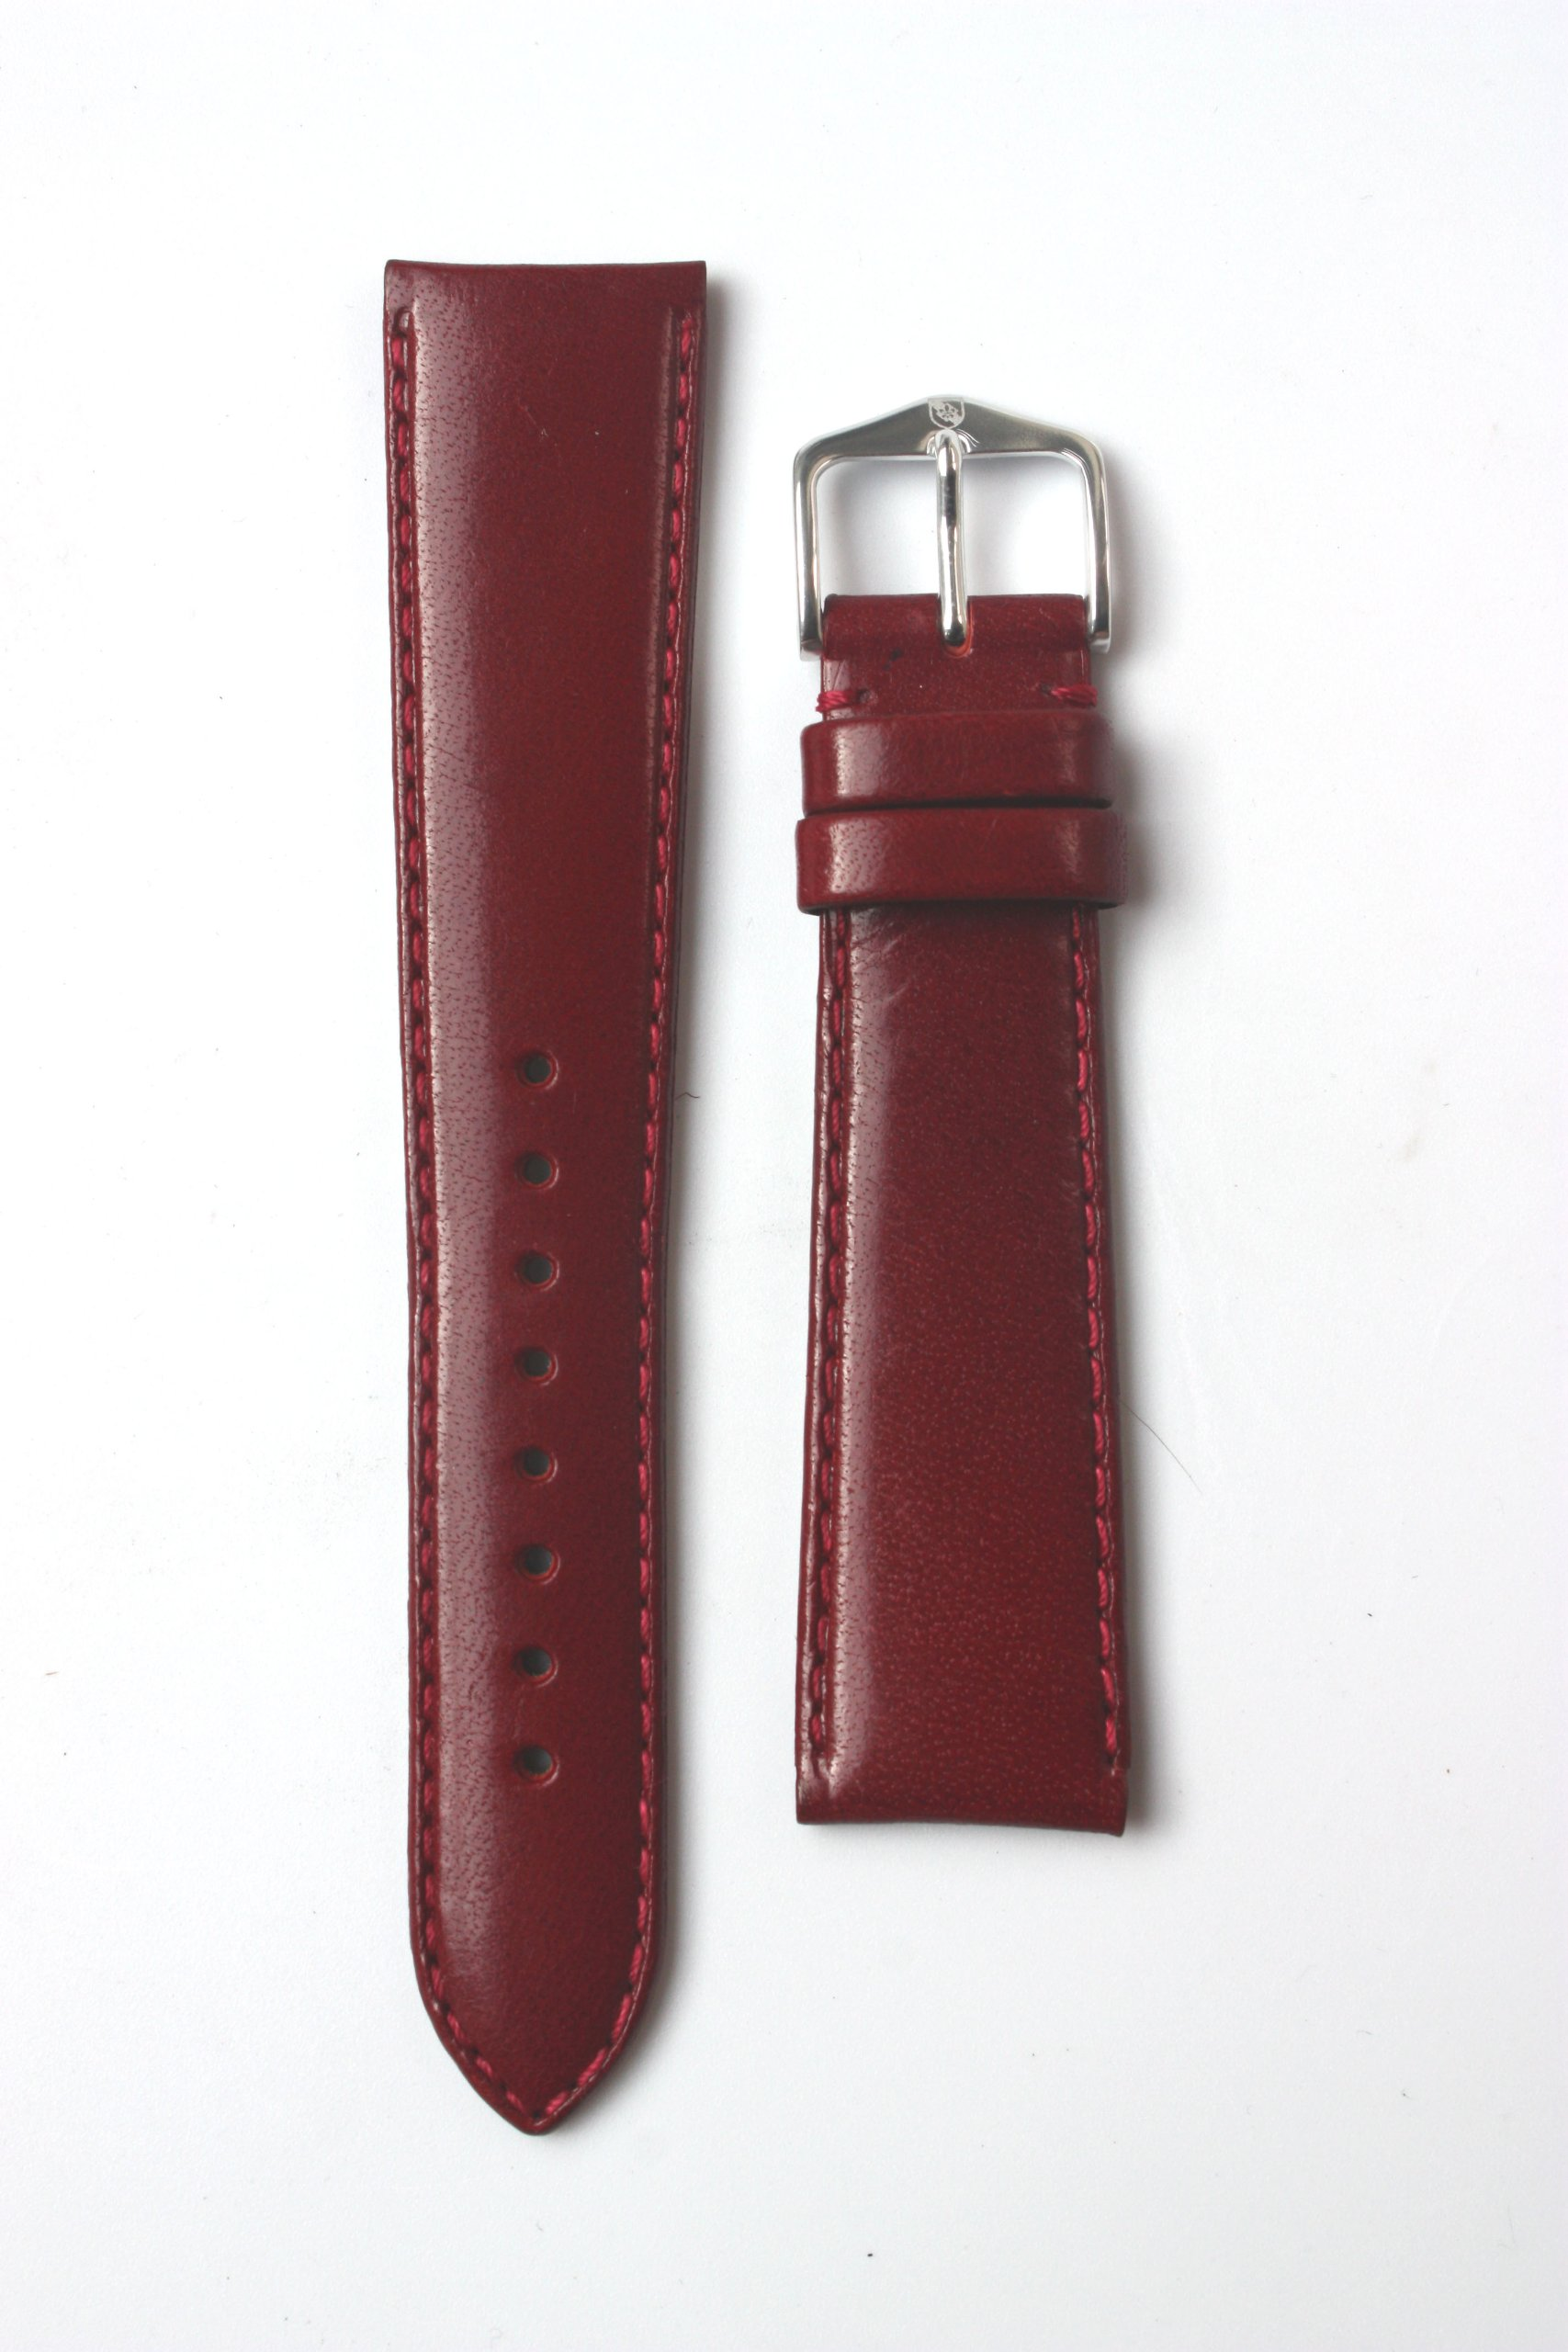 14mm Burgundy Polished Calfskin Leather Watchband with Nubuck Lining and S/S Buckle